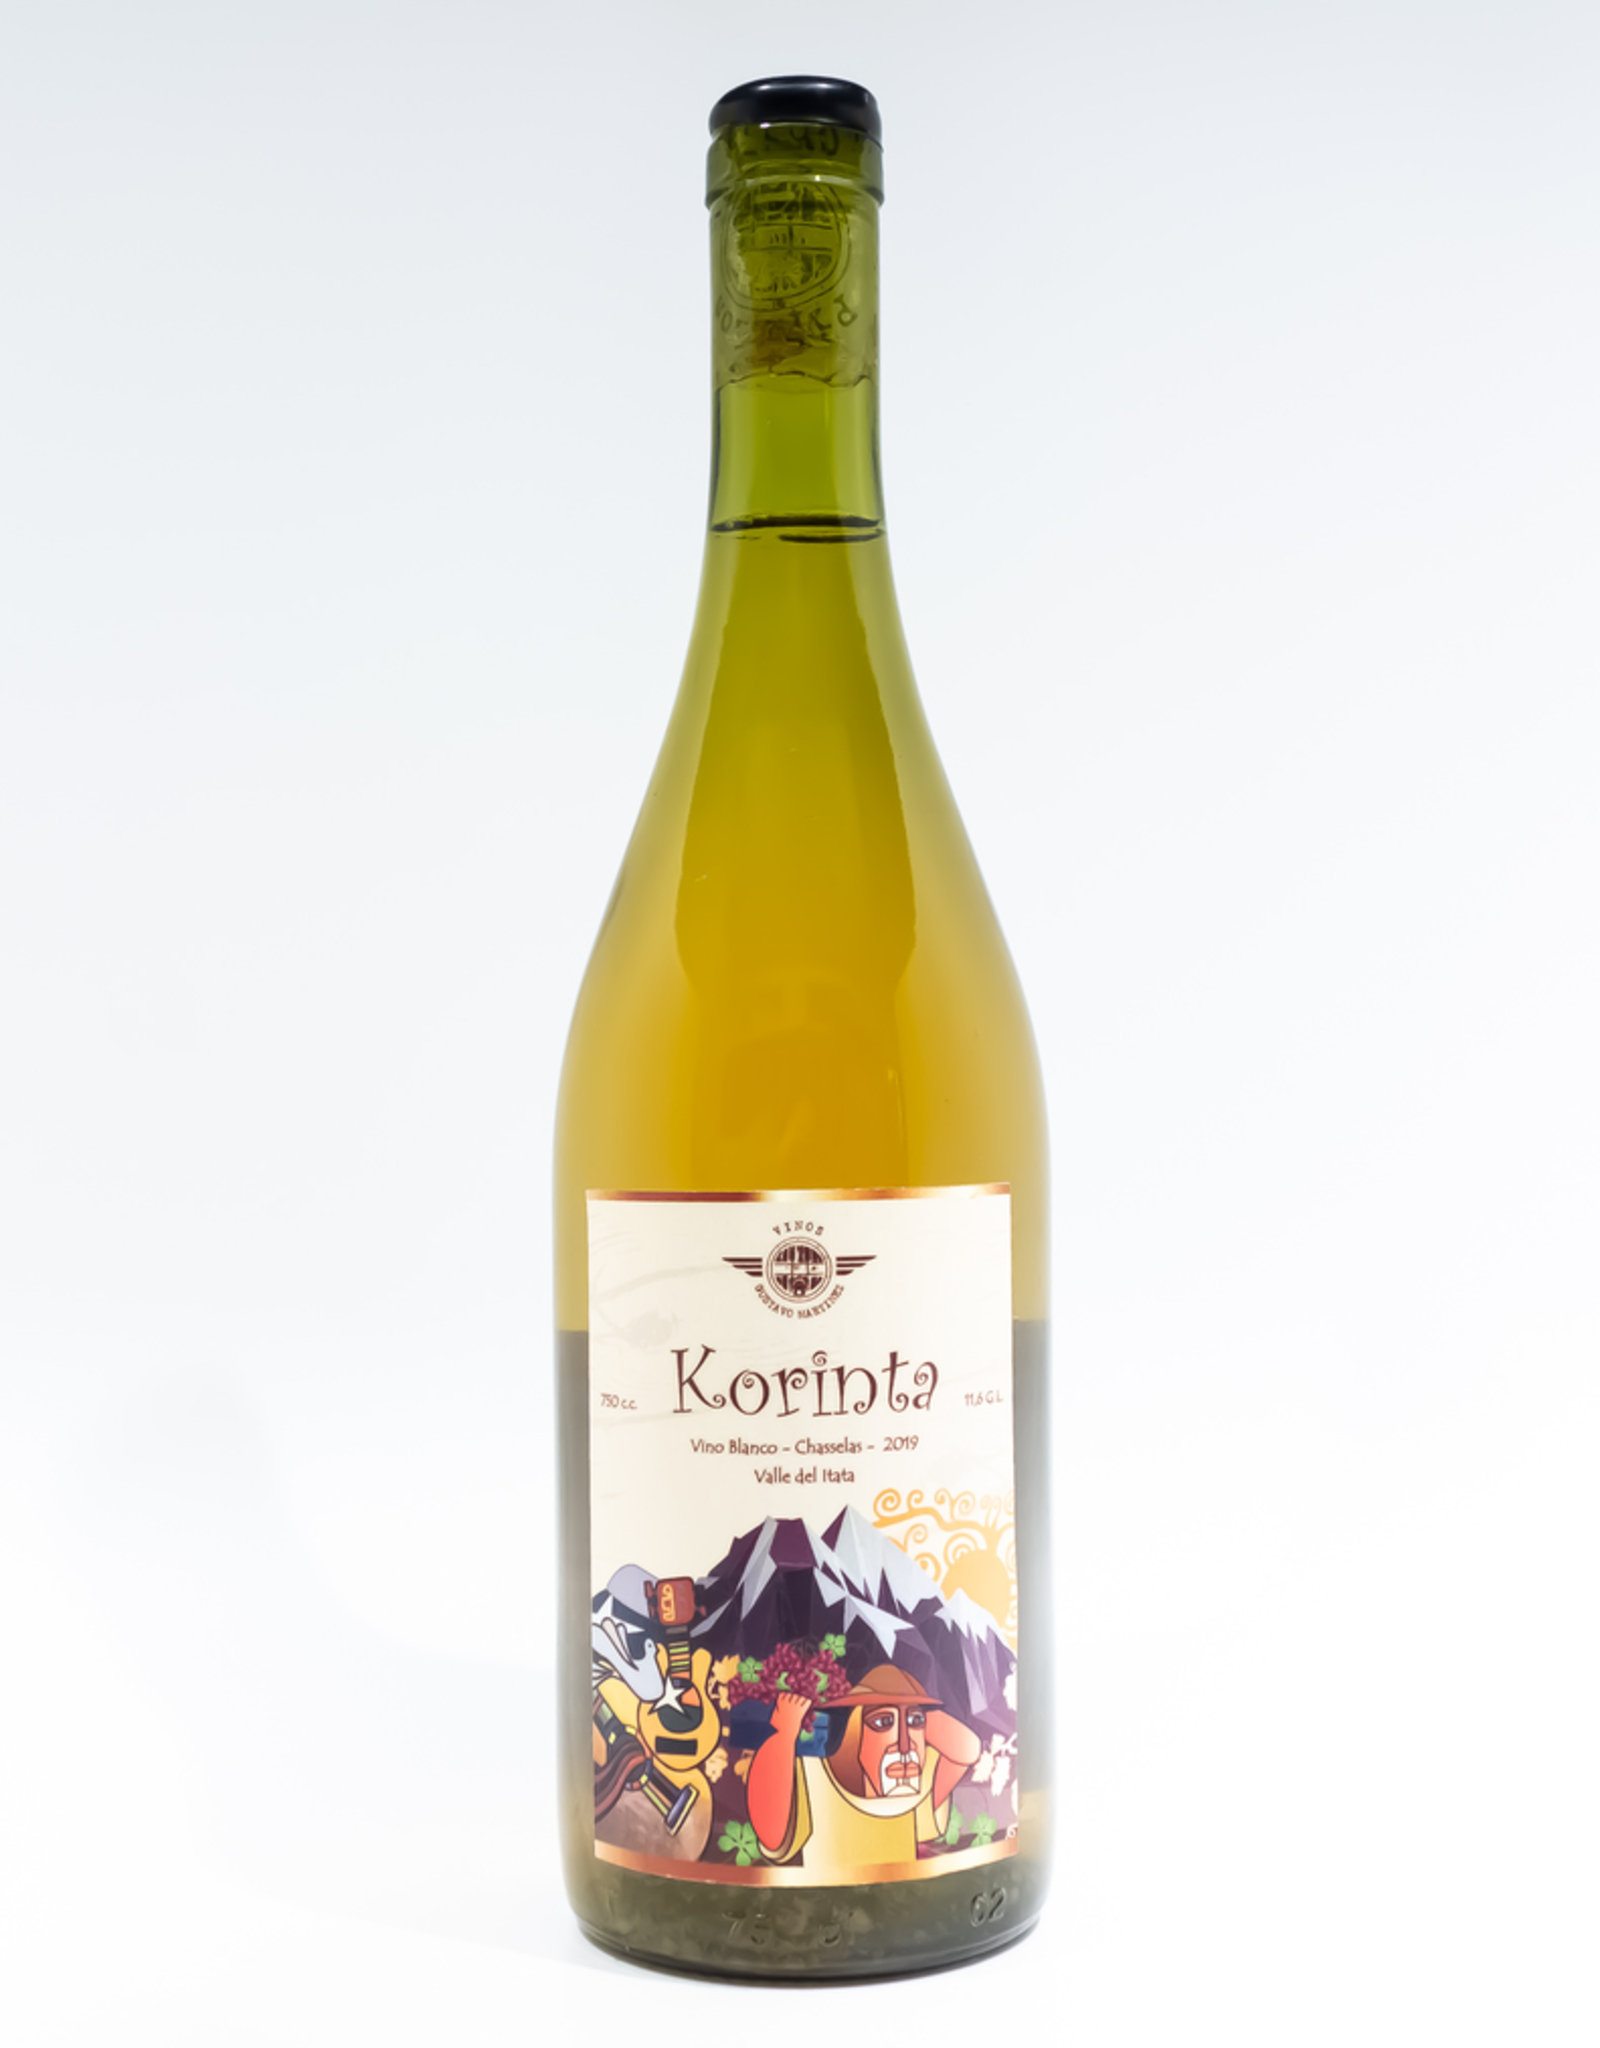 Wine-Orange/Skin-fermented Gustavo Martinez 'Korinta' Valle del Itata 2019